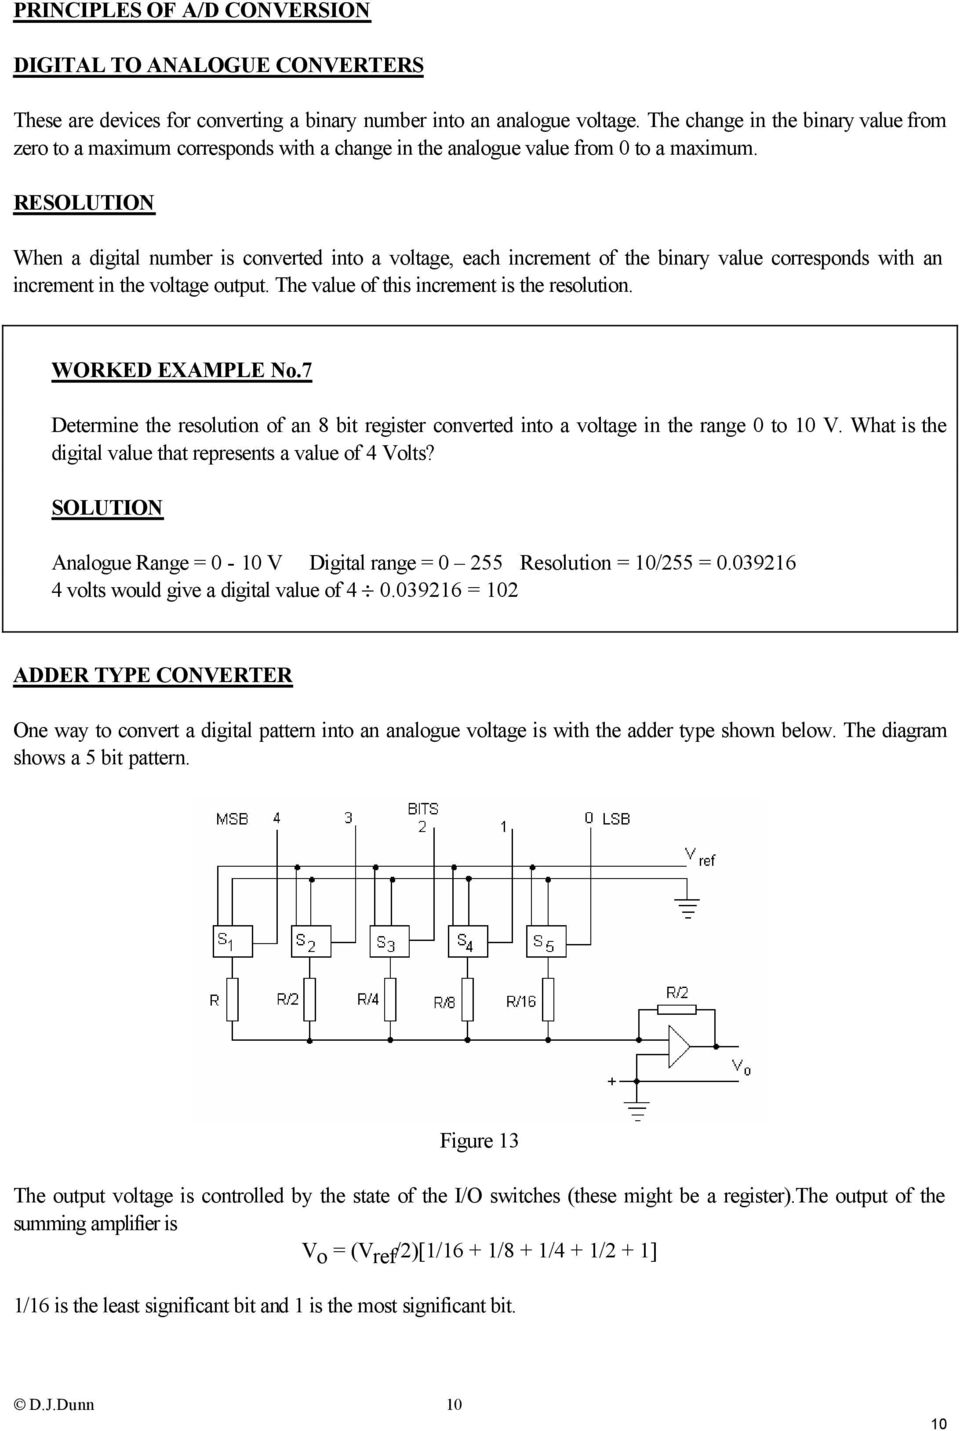 RESOLUTION When a digital number is converted into a voltage, each increment of the binary value corresponds with an increment in the voltage output. The value of this increment is the resolution.